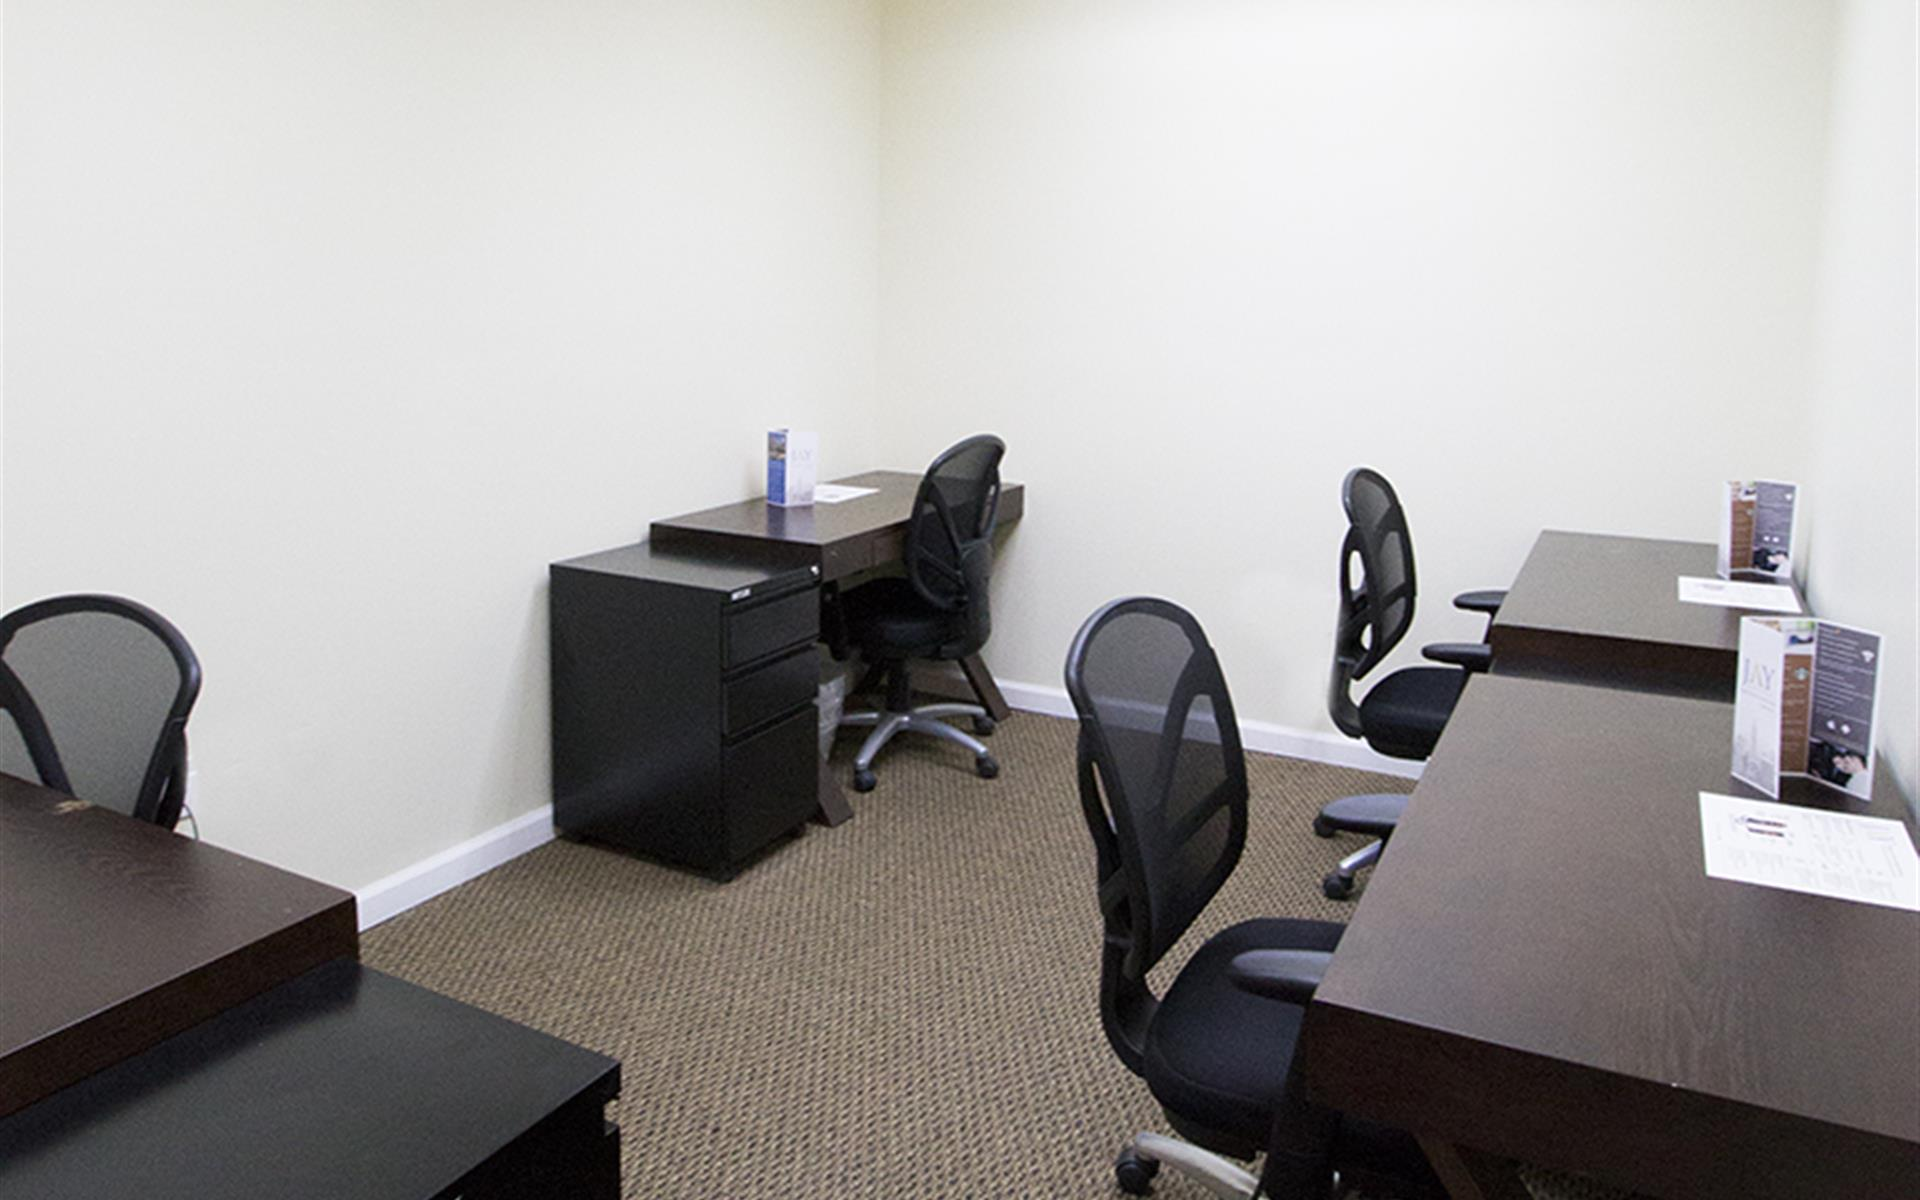 Jay Suites Financial District - Private office space -up to 10 people